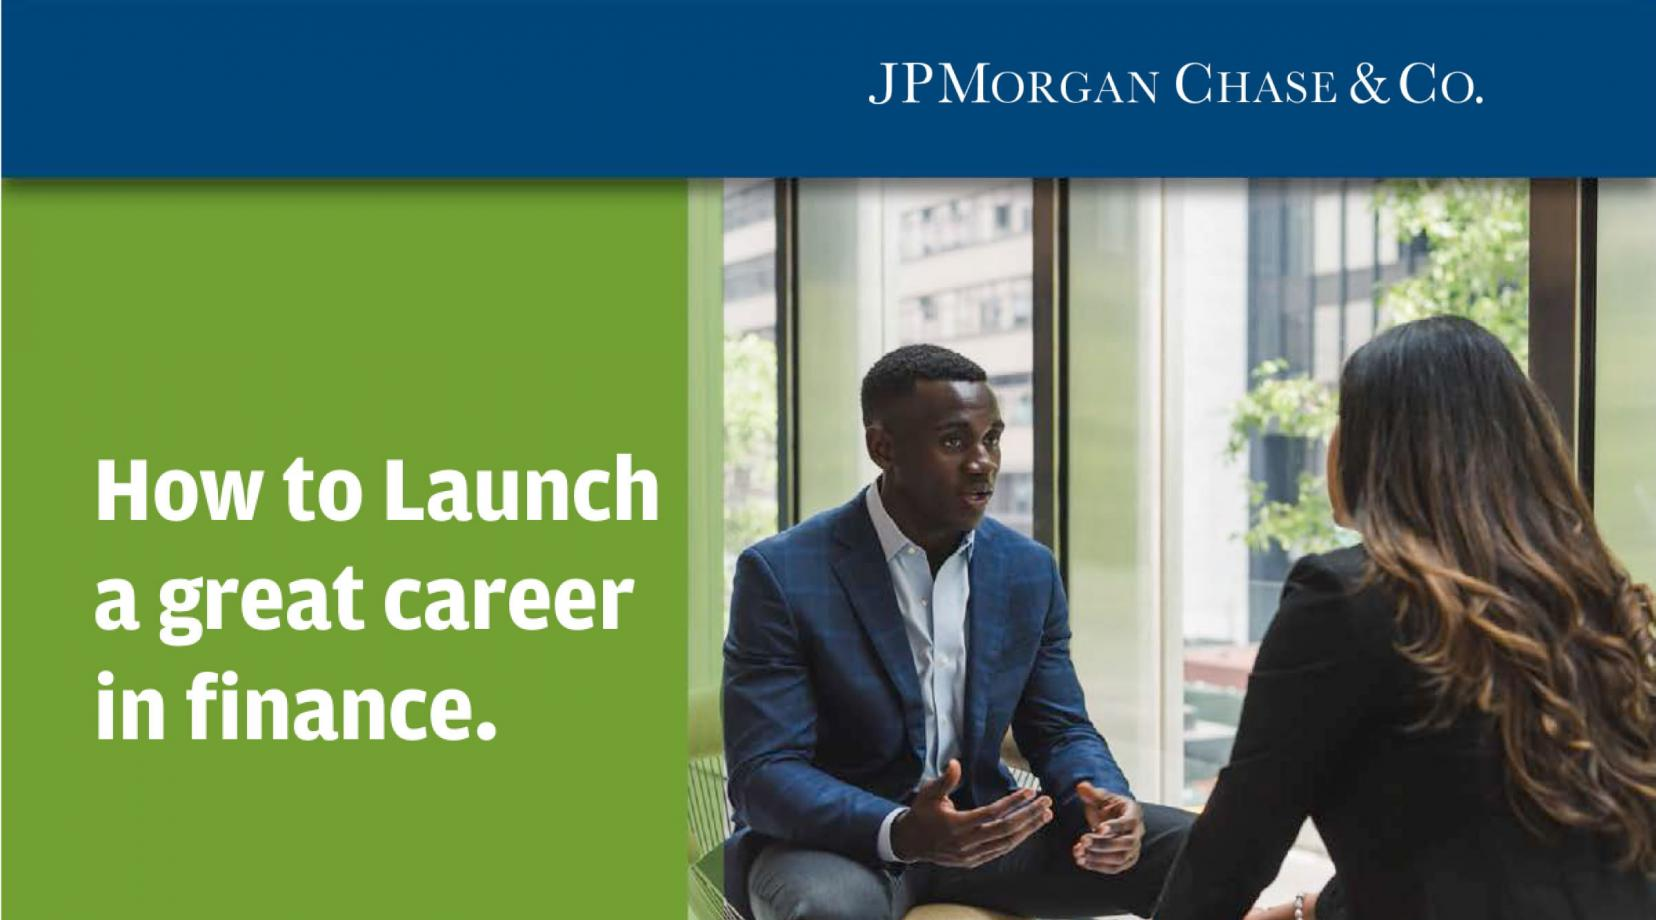 JPMorgan Chase & Co Takeover day at Delaware State University